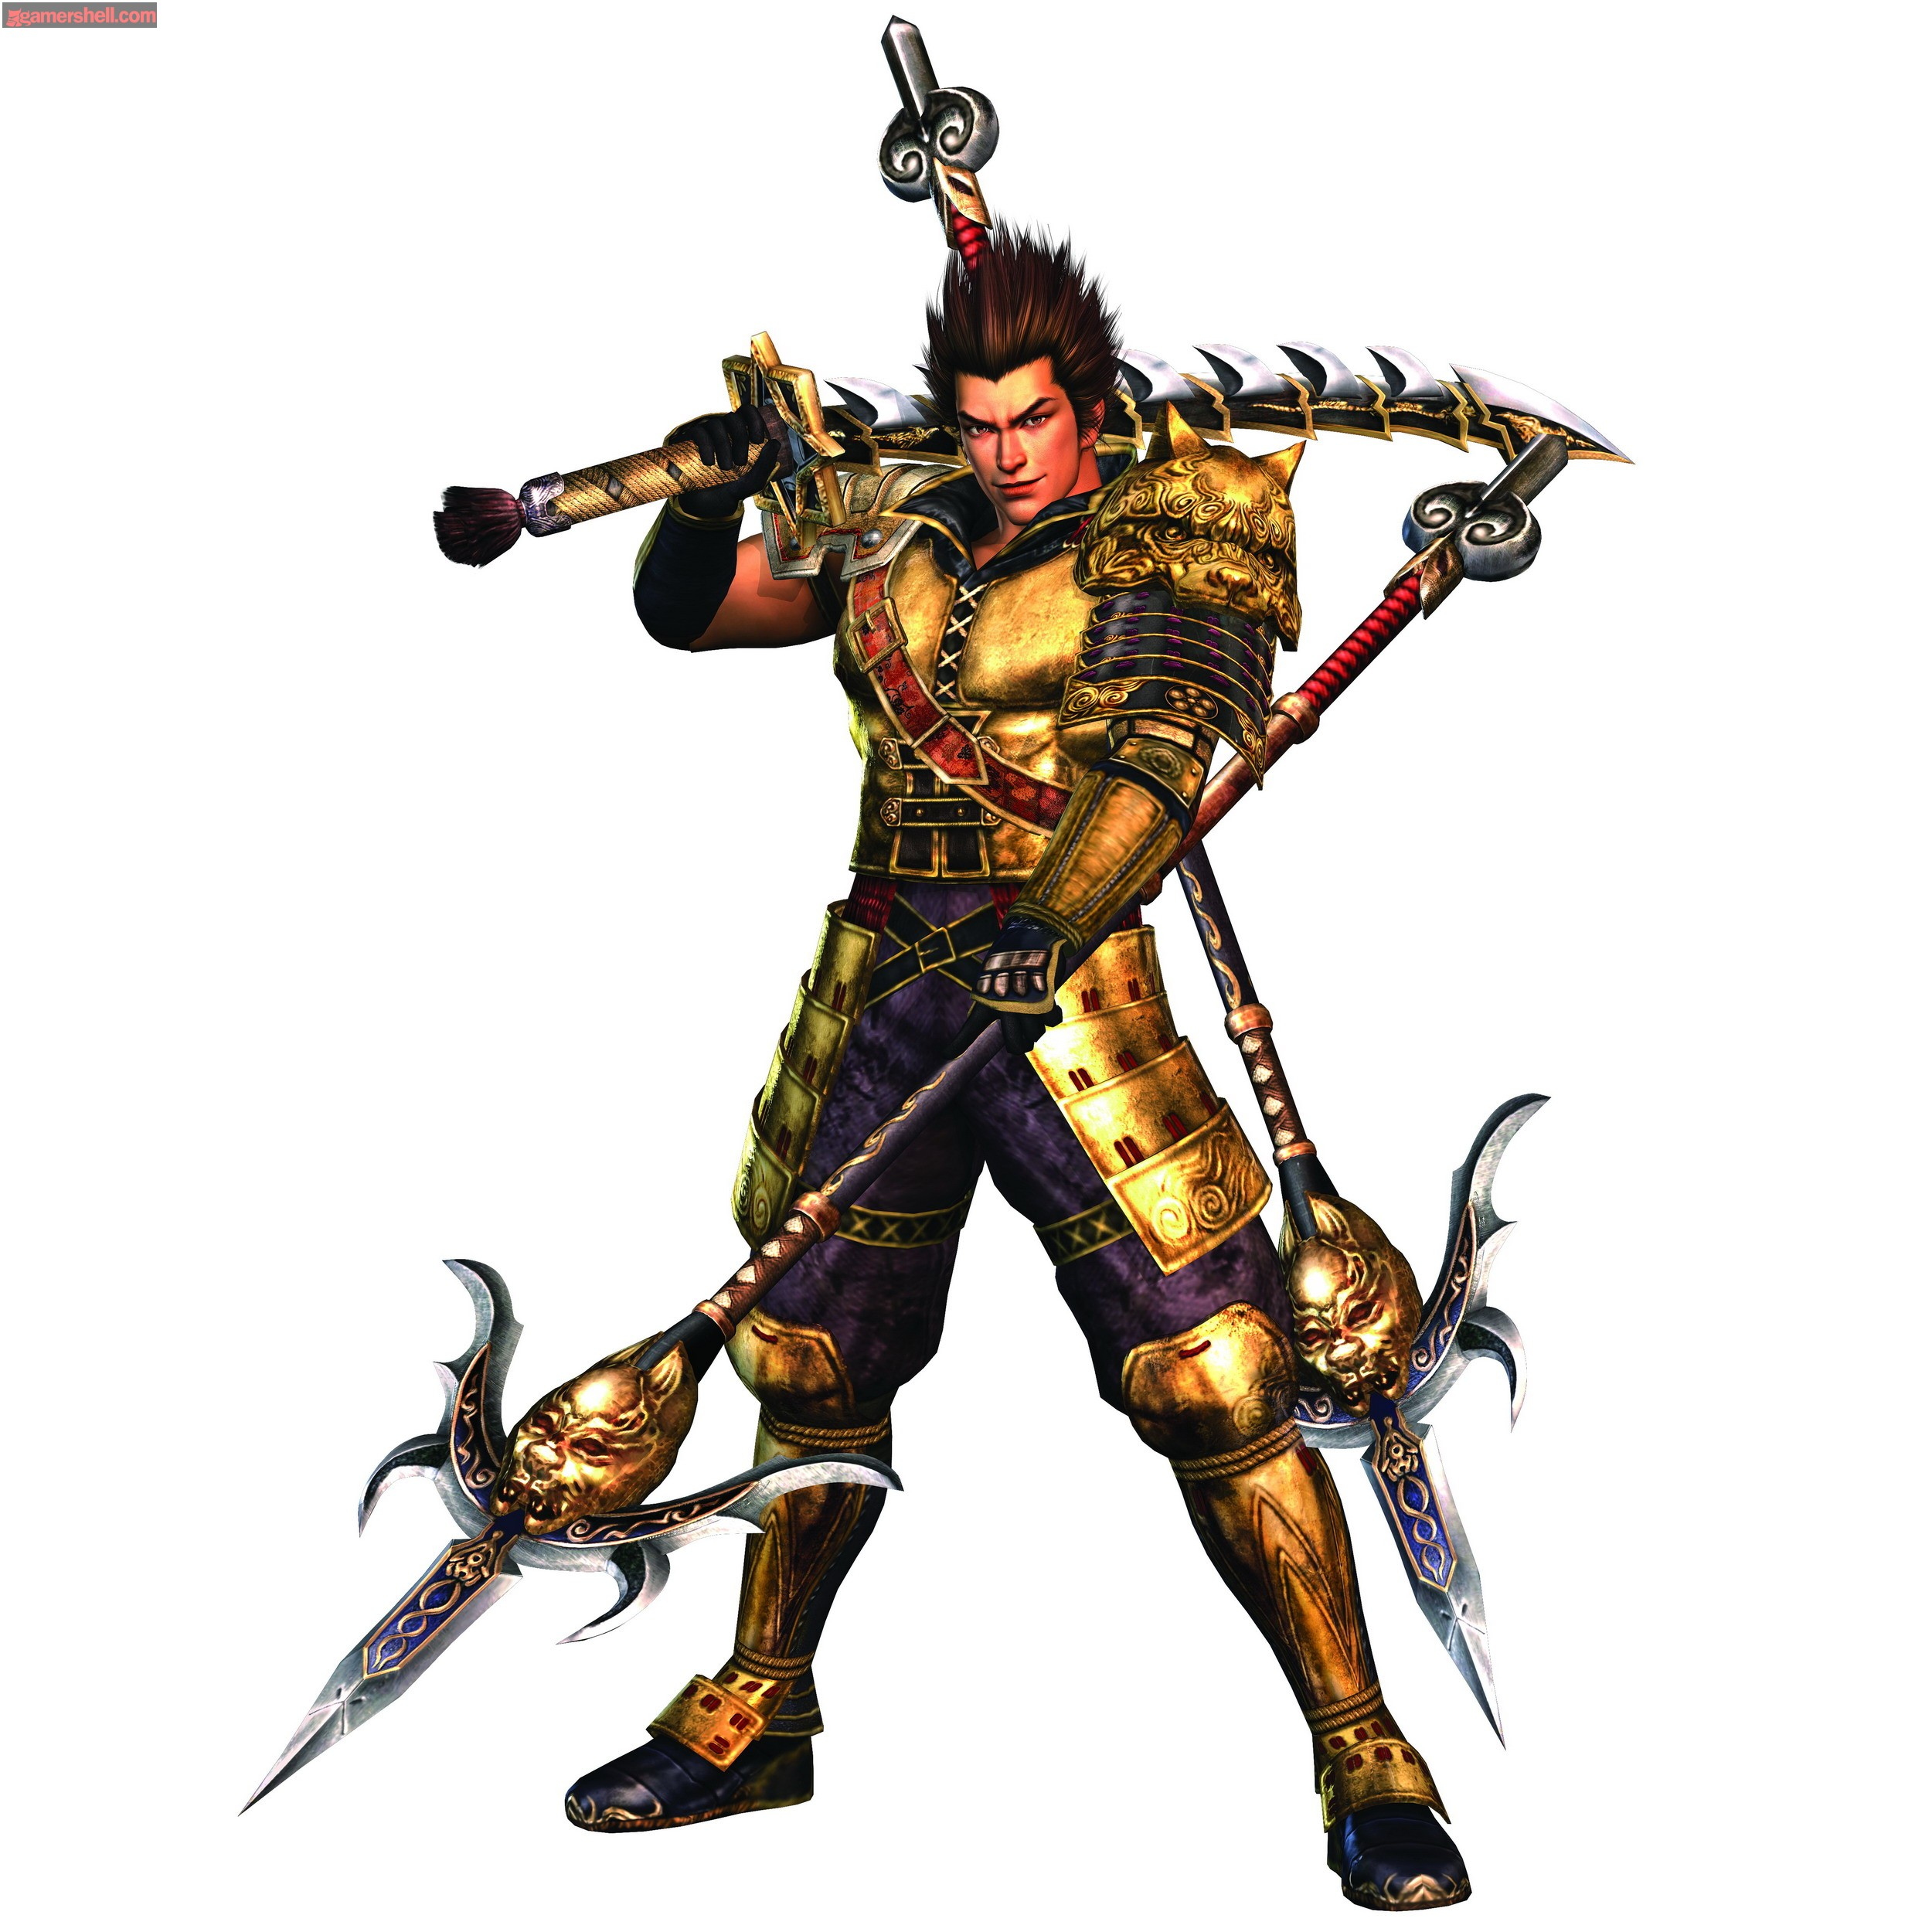 Best Characters In Warriors Orochi 4: Warriors Orochi